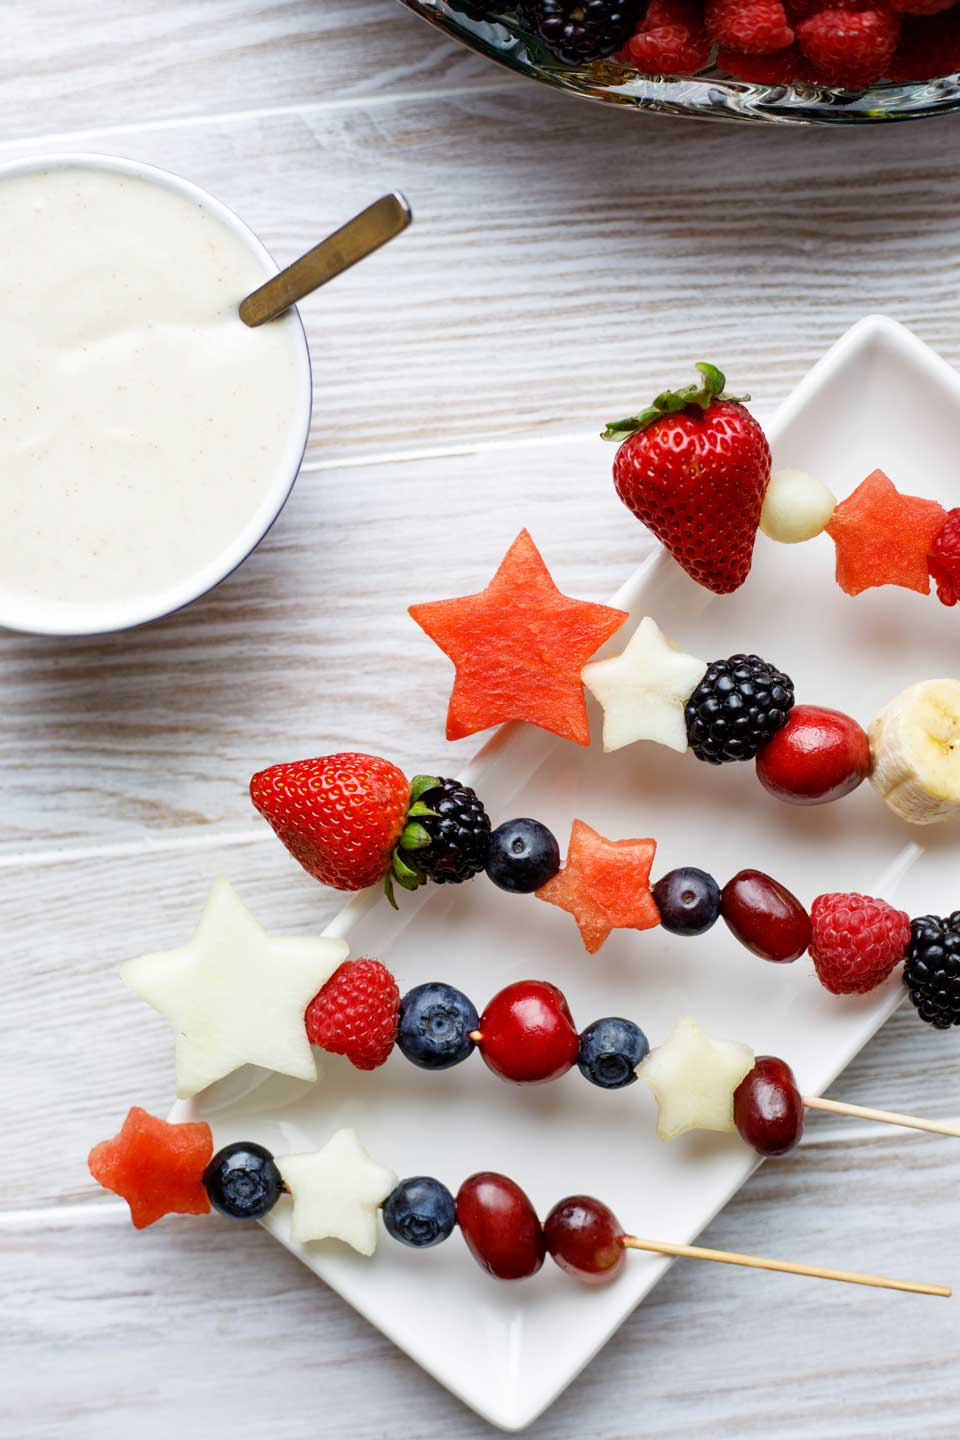 Easy and fun as appetizers or dessert! With our quick tips, you can serve Red, White and Blue Fruit Kabobs as a refreshing appetizer with sweet Yogurt Dip, or as a light but decadent dessert with cake and Chocolate Lava Dip! Plus fun serving ideas, too! Make these for all your summer picnics and BBQs ... from Memorial Day to 4th of July to Labor Day! #picnic #patriotic #redwhiteandblue #fruit #kabobs #appetizer #healthy #dessert #partyfood #4thofJuly #fourthofjuly | www.TwoHealthyKitchens.com